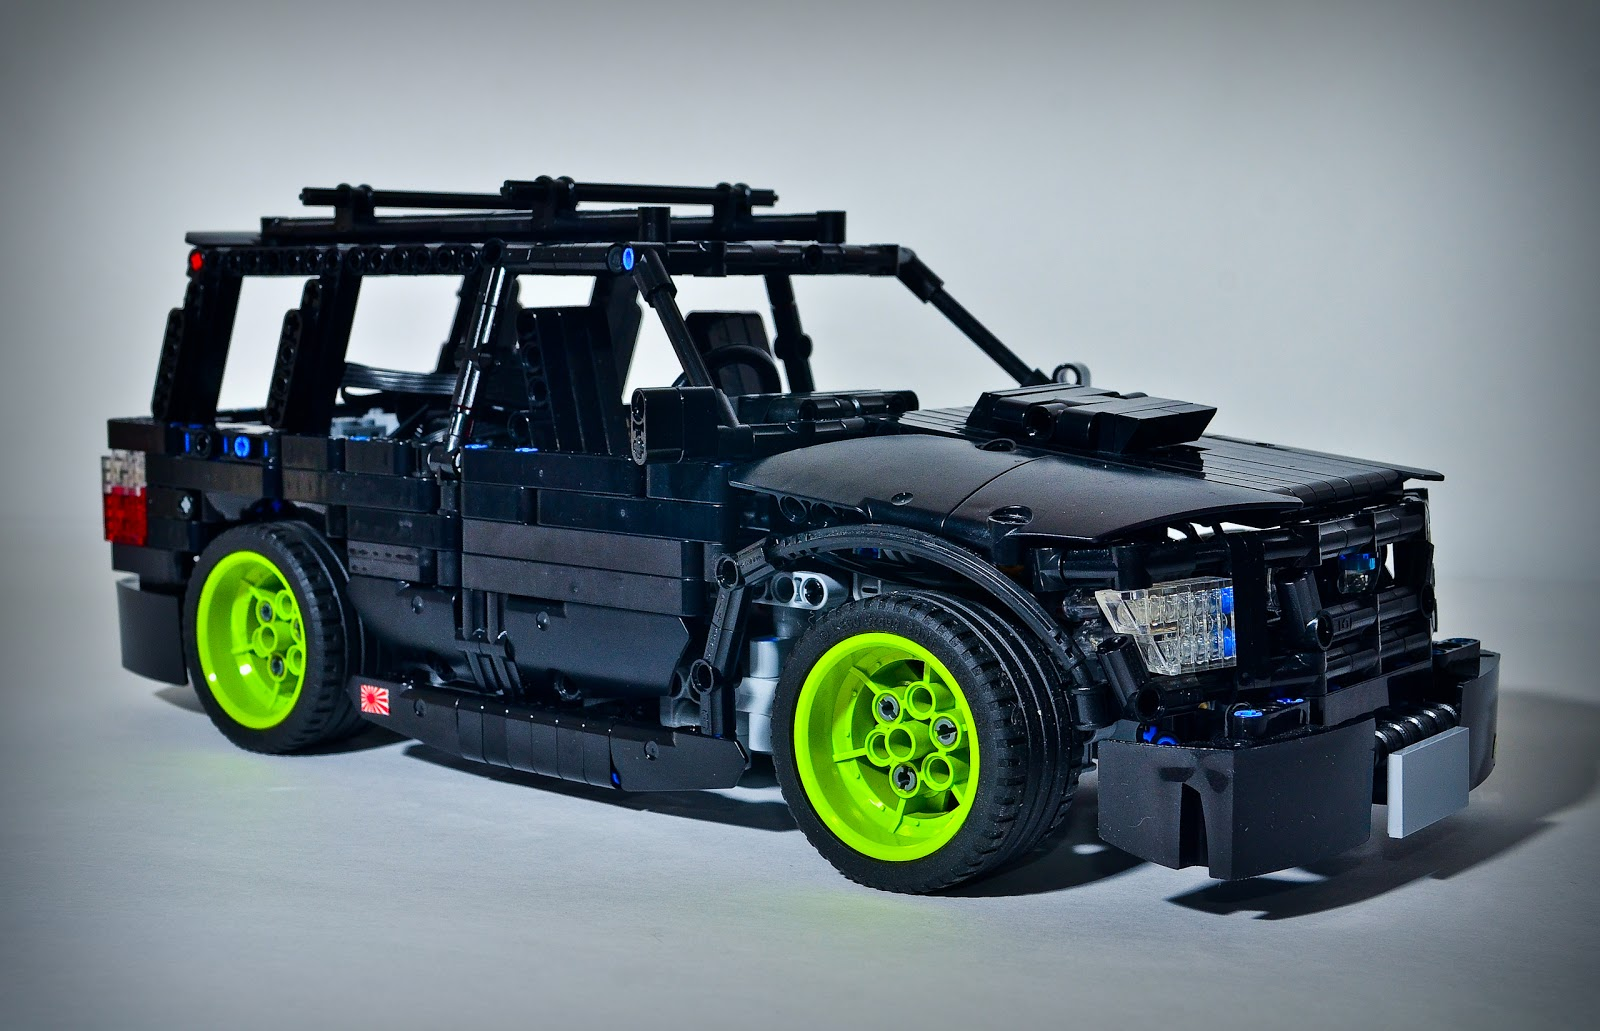 filsawgood Lego Technic Creations  Lego Technic Subaru Forester